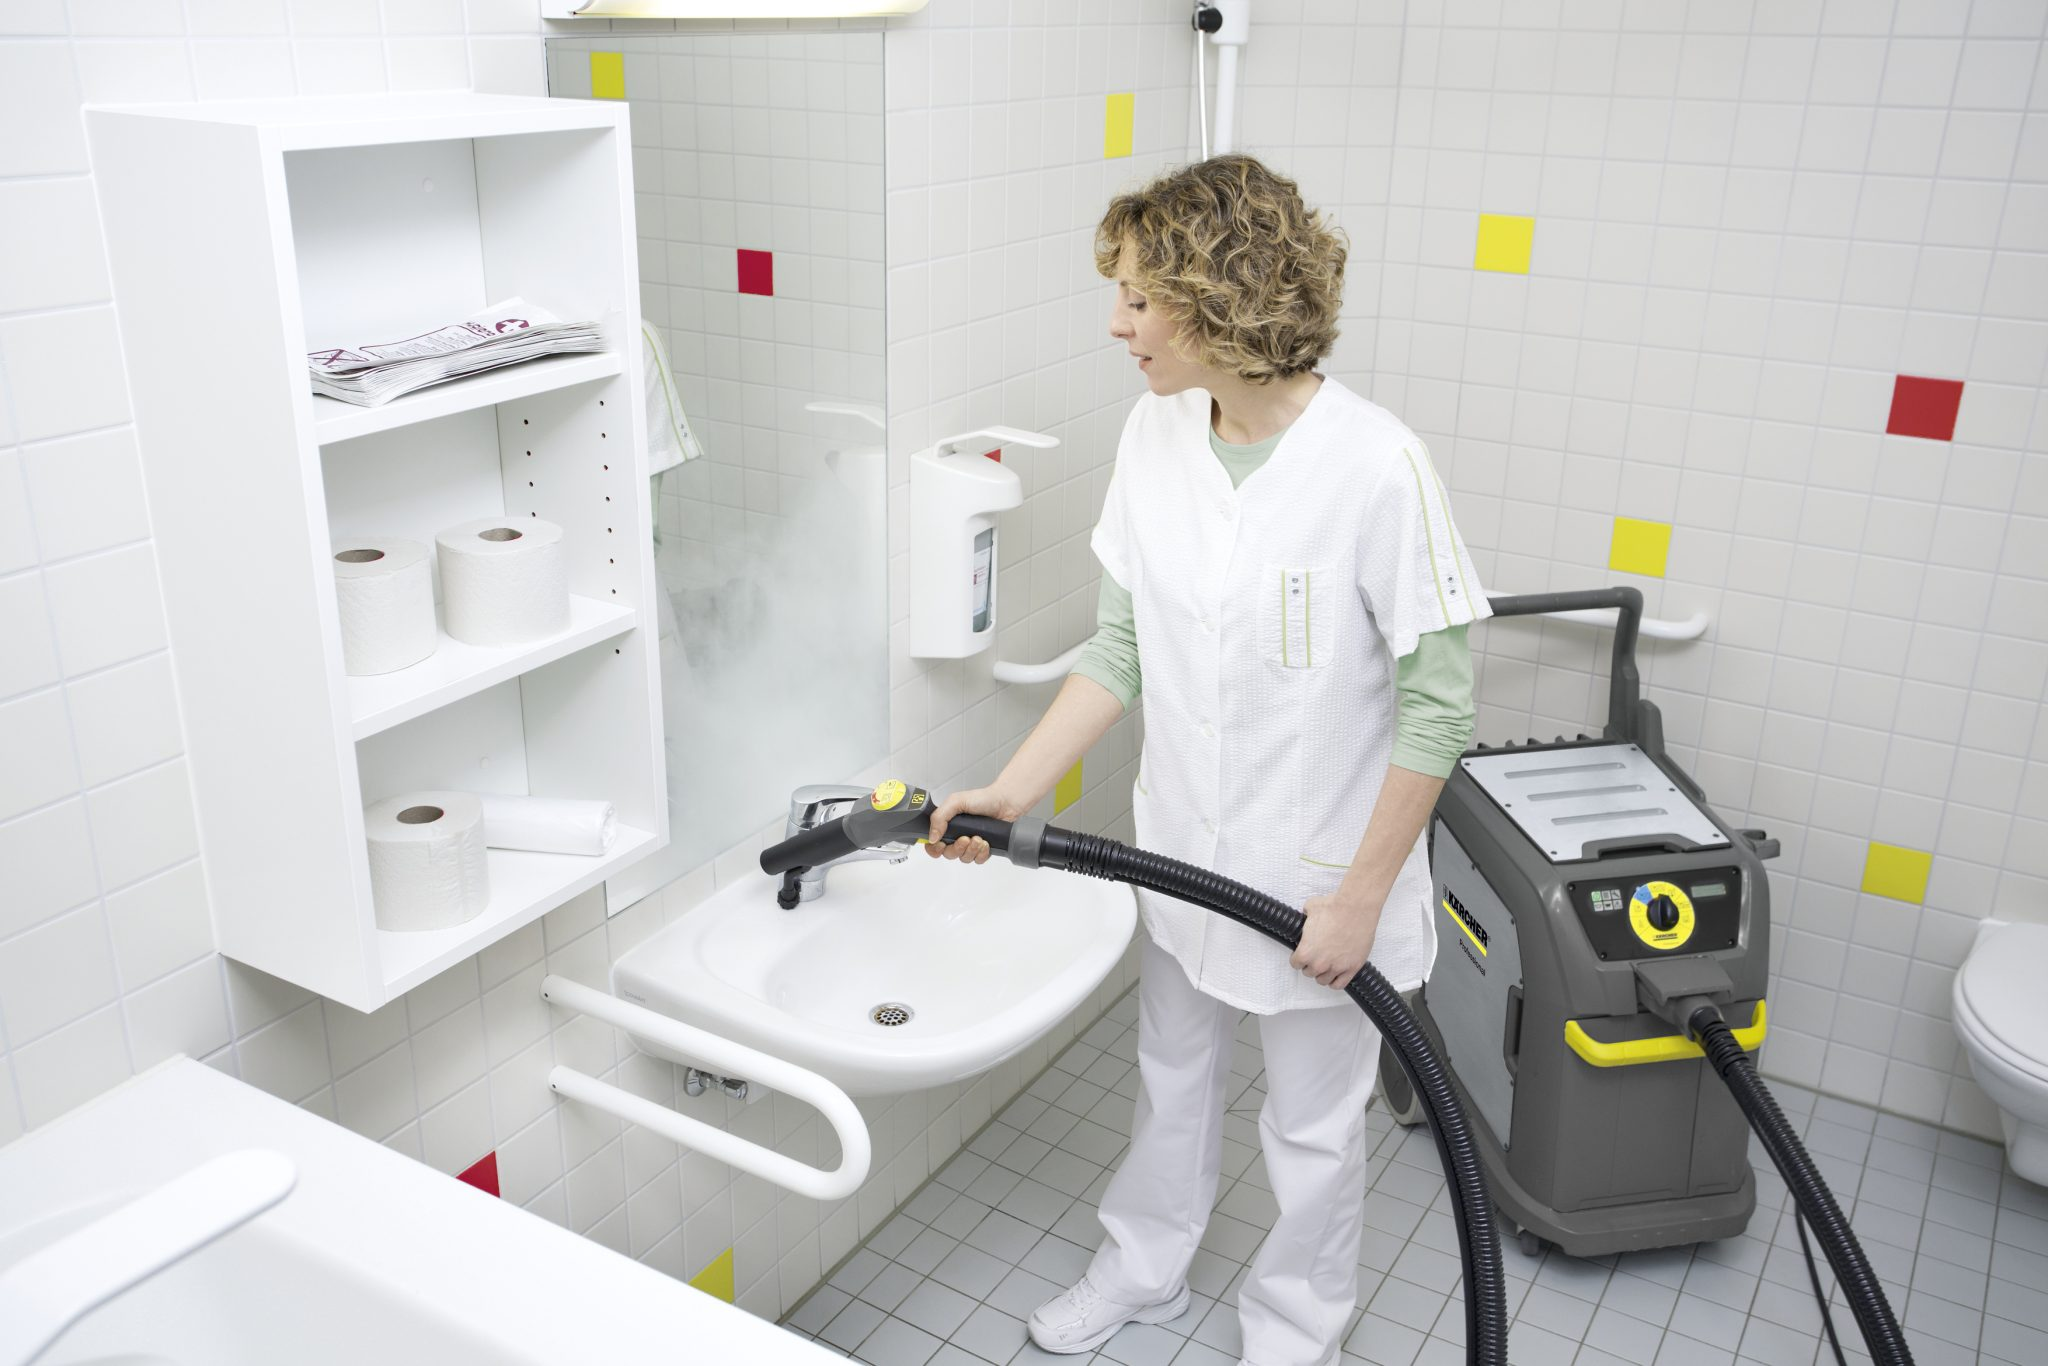 Cleaning considerations for Covid-19